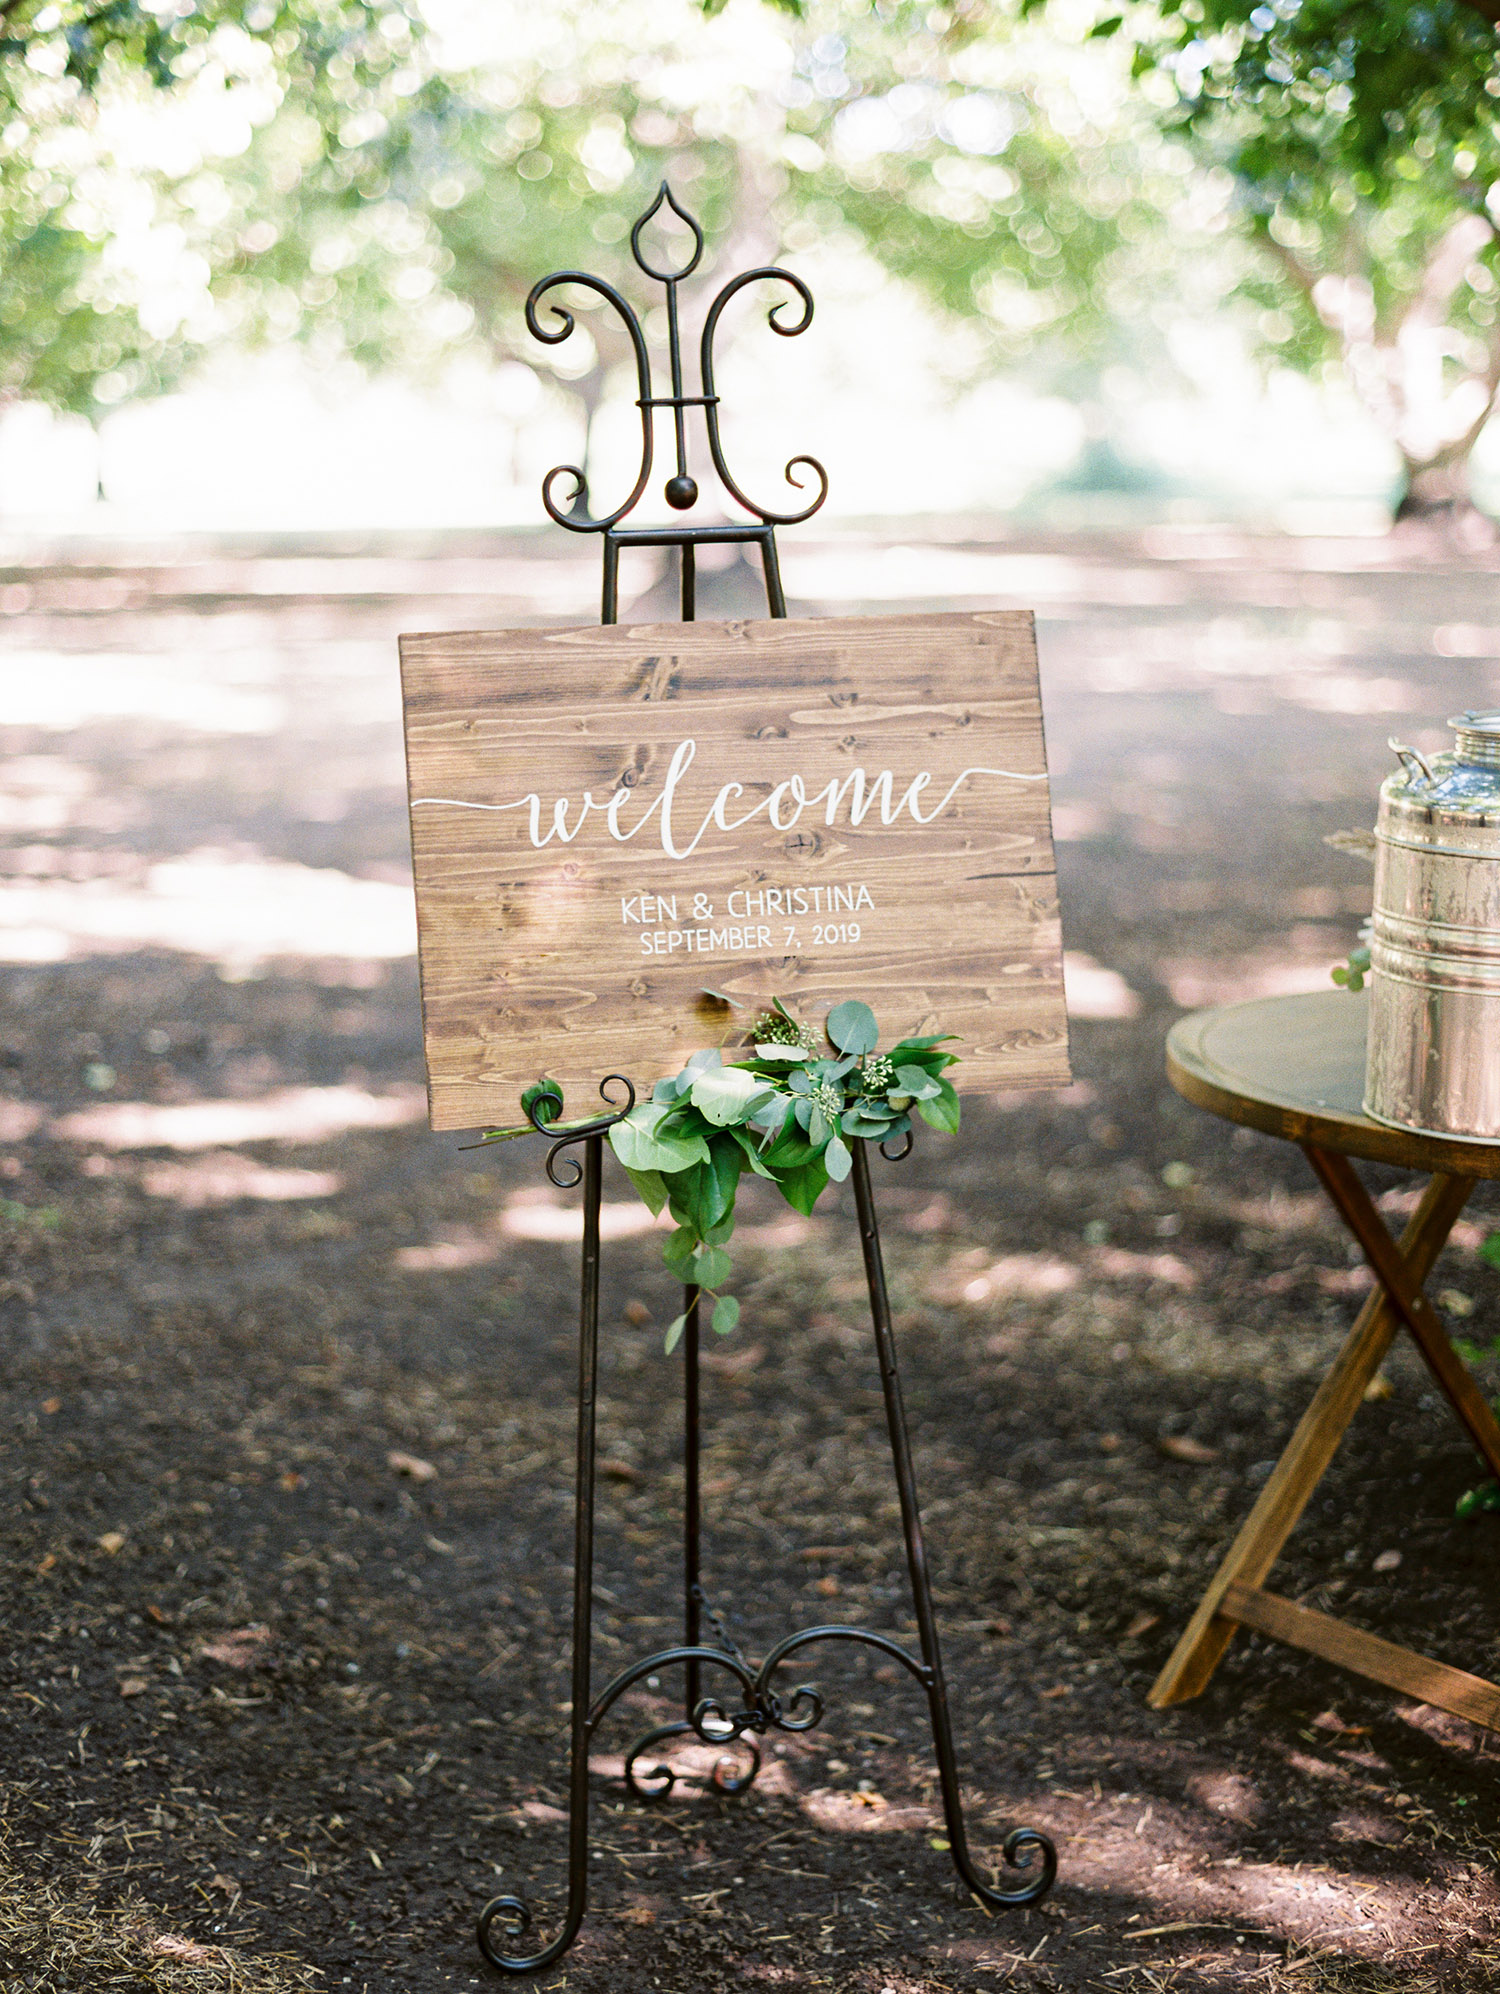 christina ken wedding welcome sign